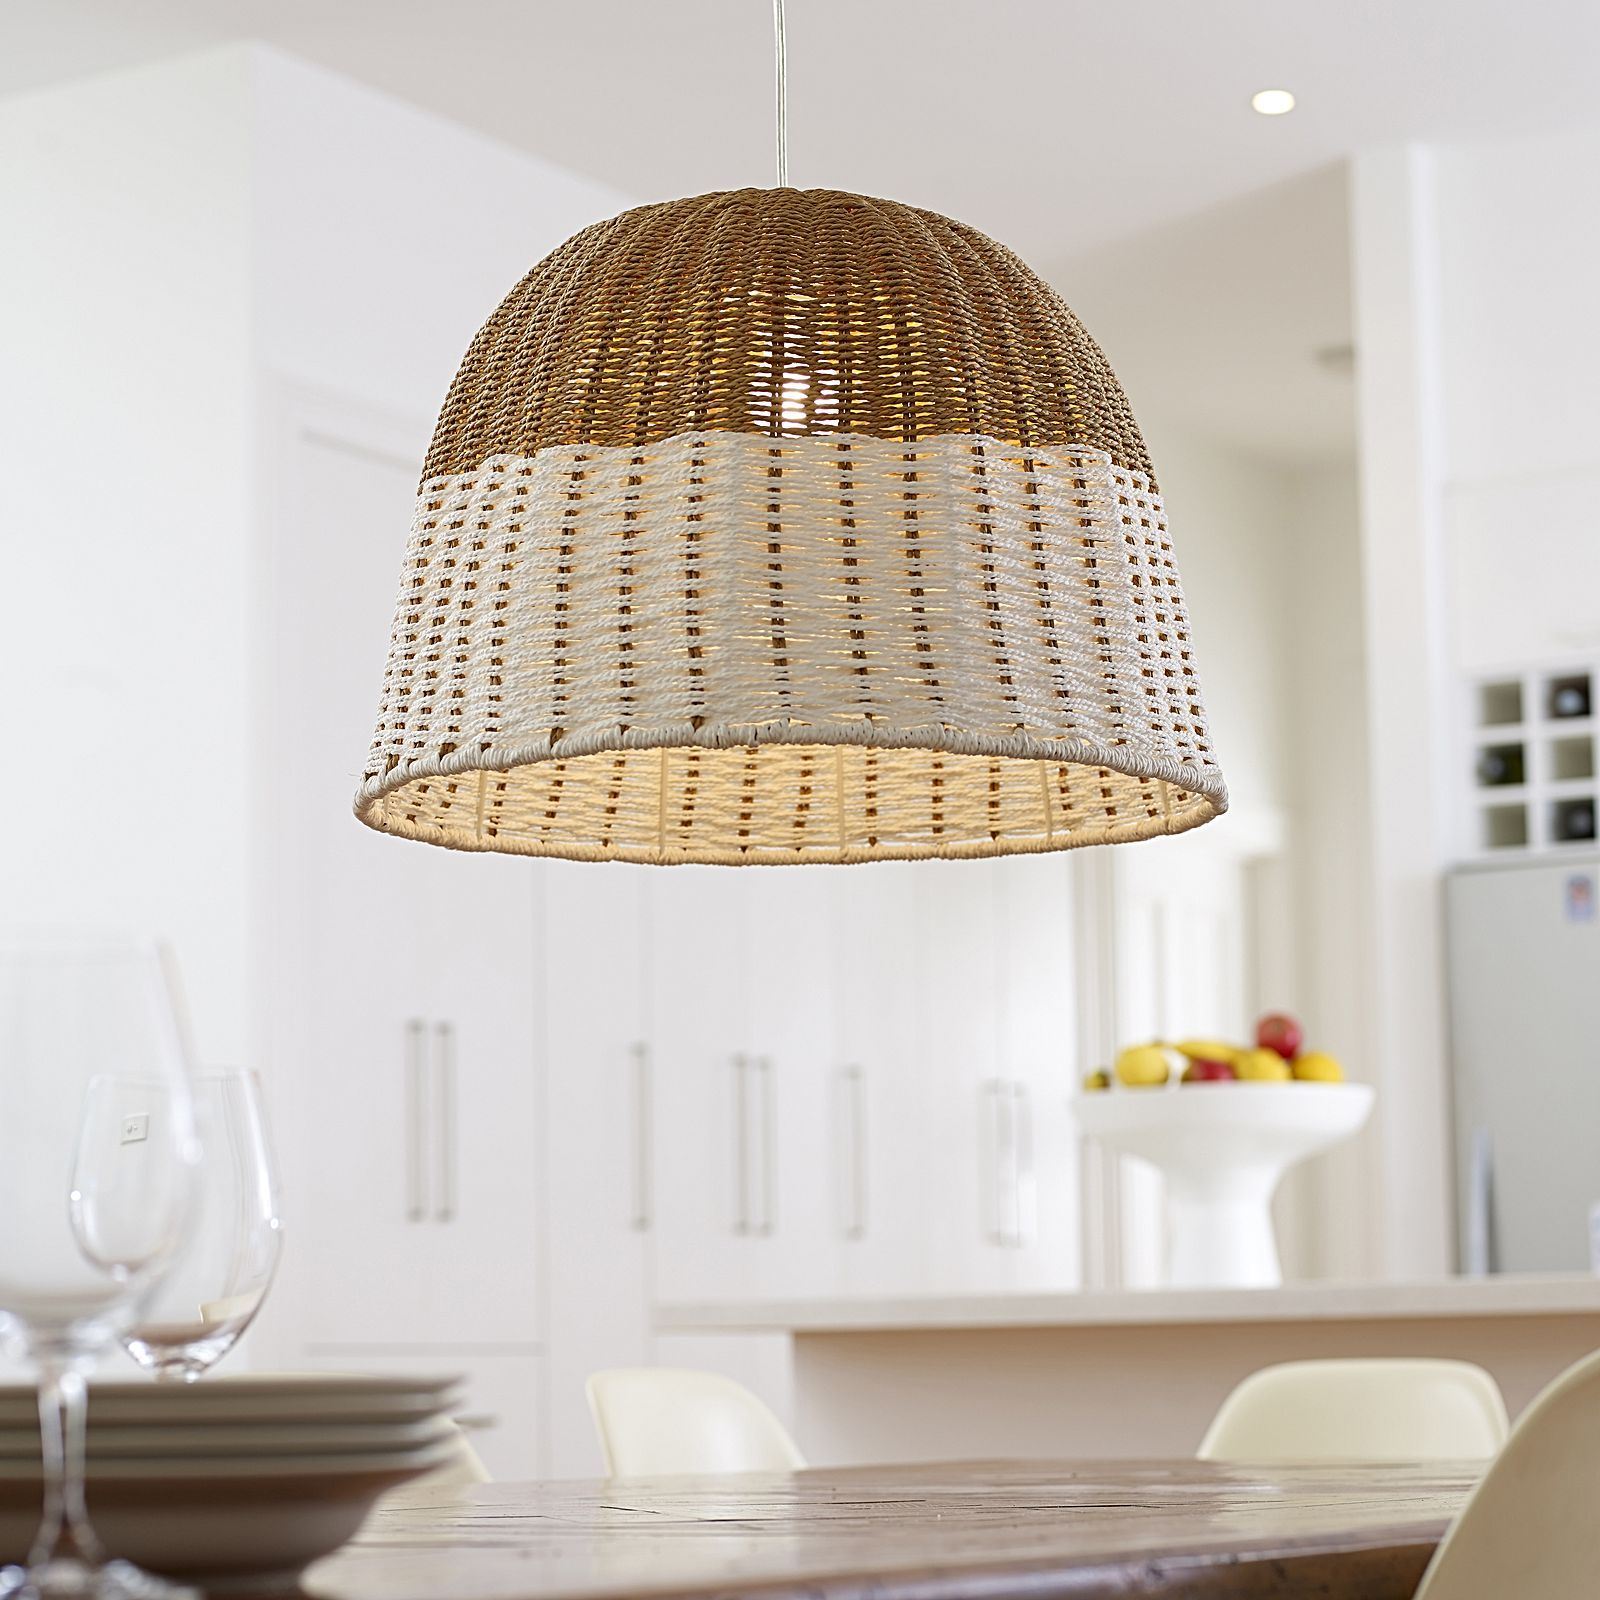 Rhodes Pendant Light By Rouge Living - Zanui